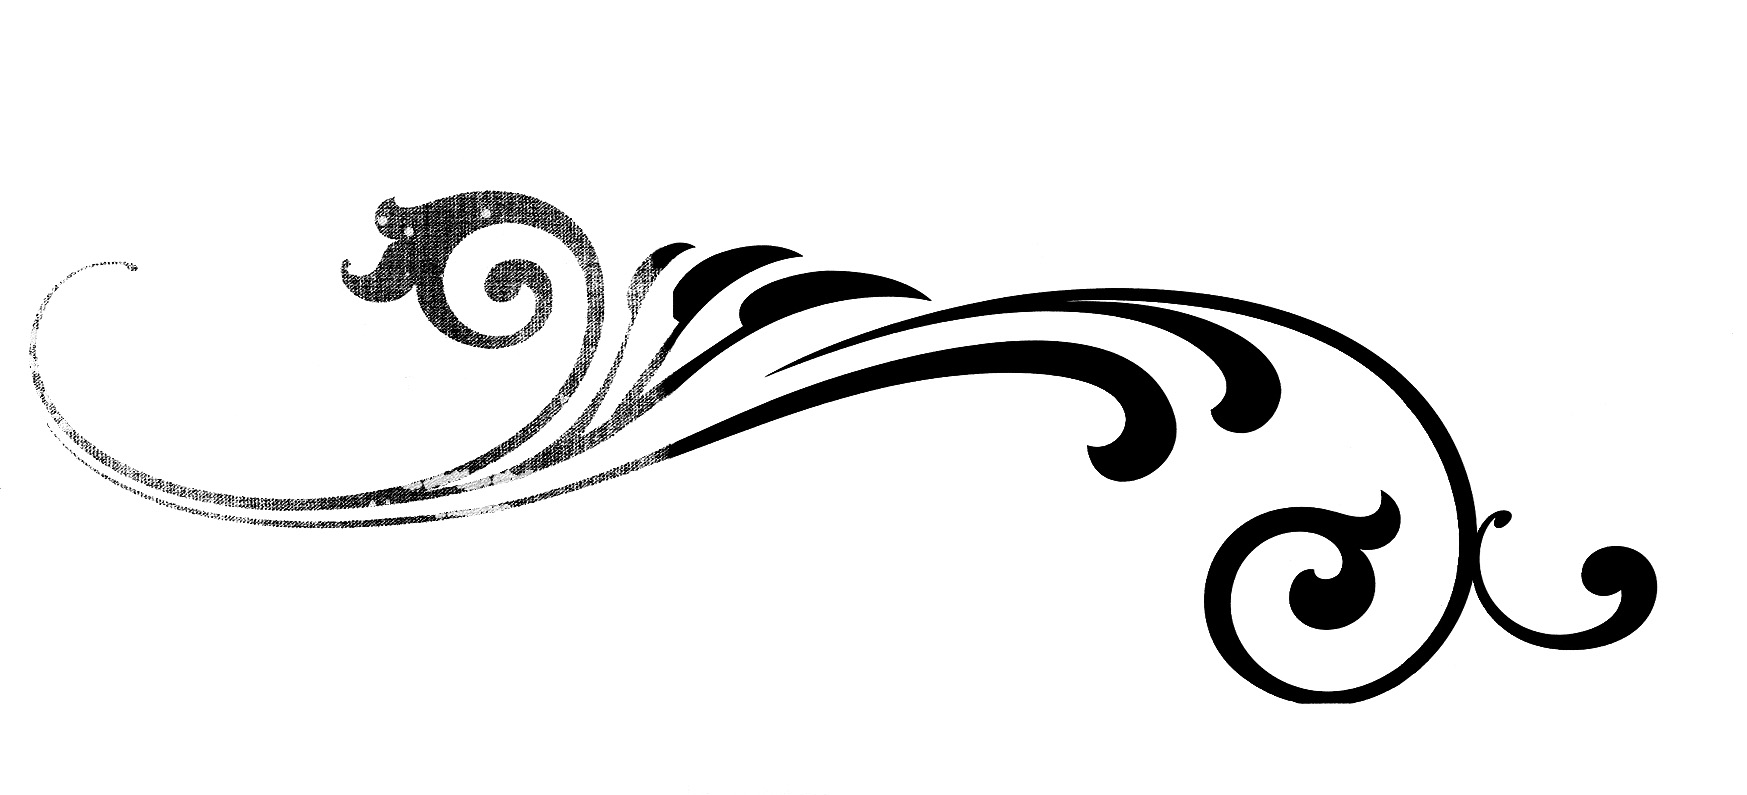 Calligraphy Flourish Vector - ClipArt Best